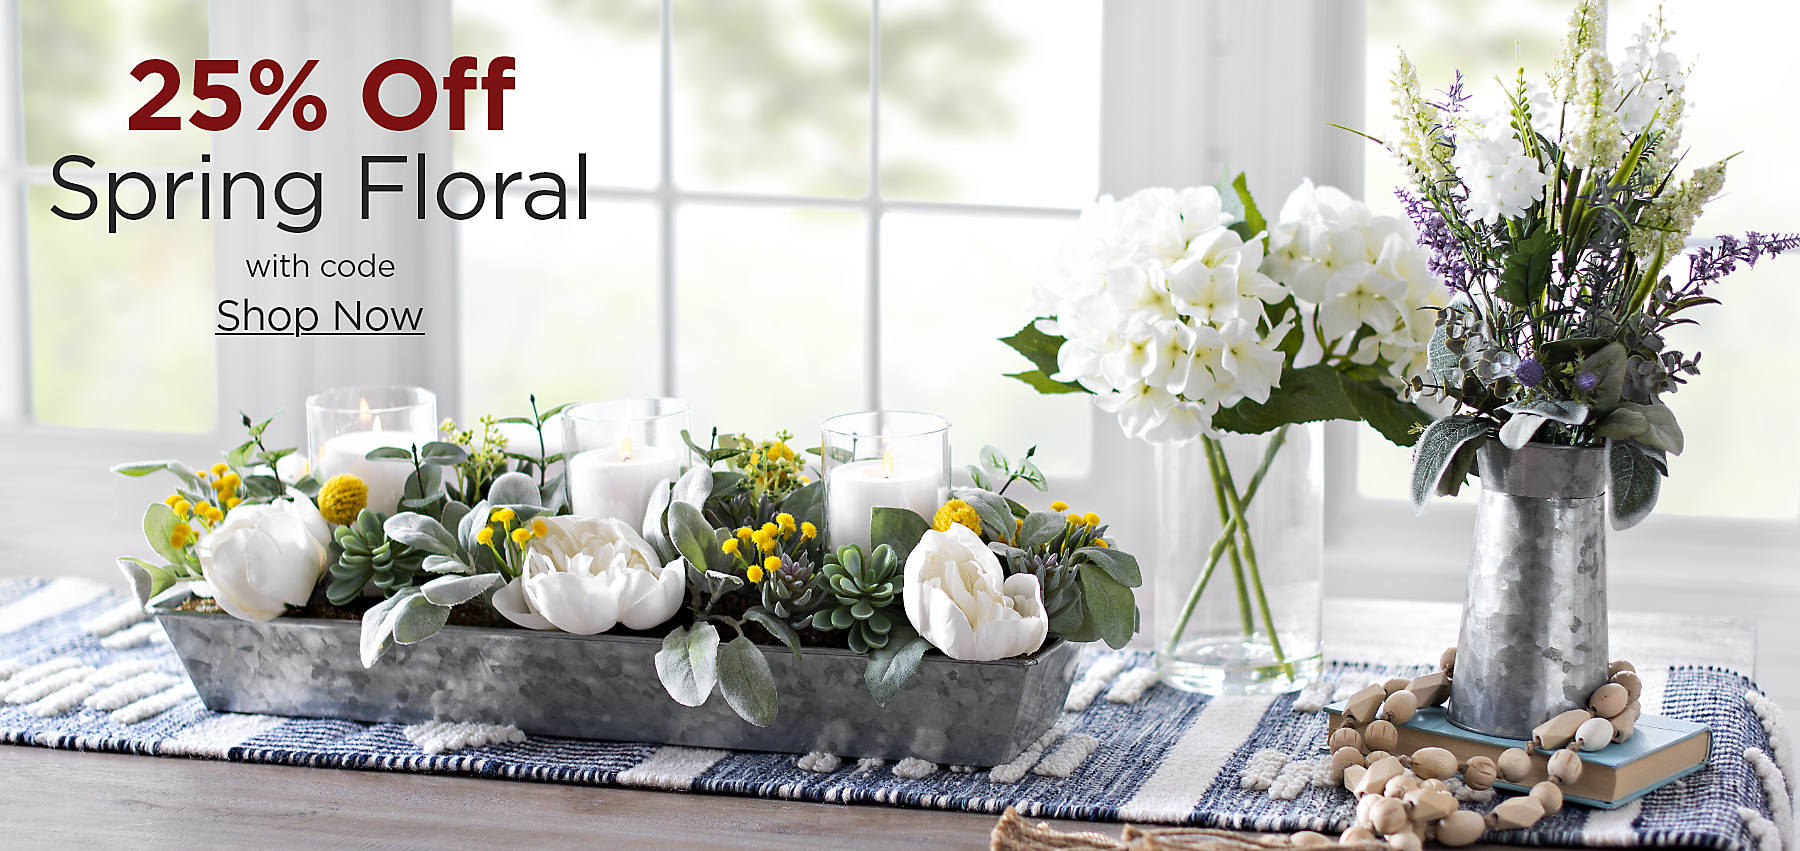 25% Off Spring Floral with code: COZY Shop Now